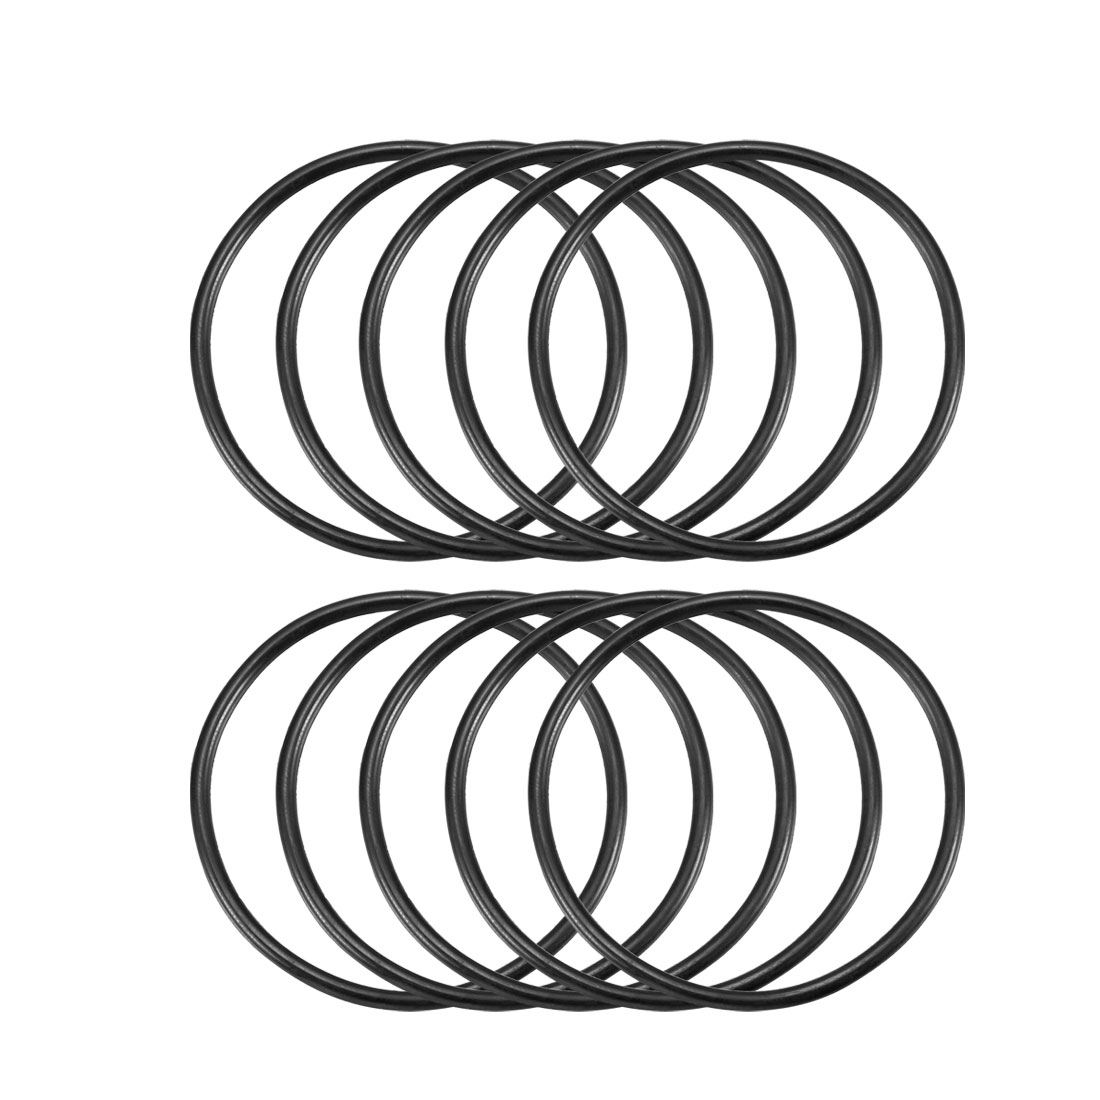 10 Pcs 46mm x 2.4mm Black Silicone O Rings Oil Seals Gaskets